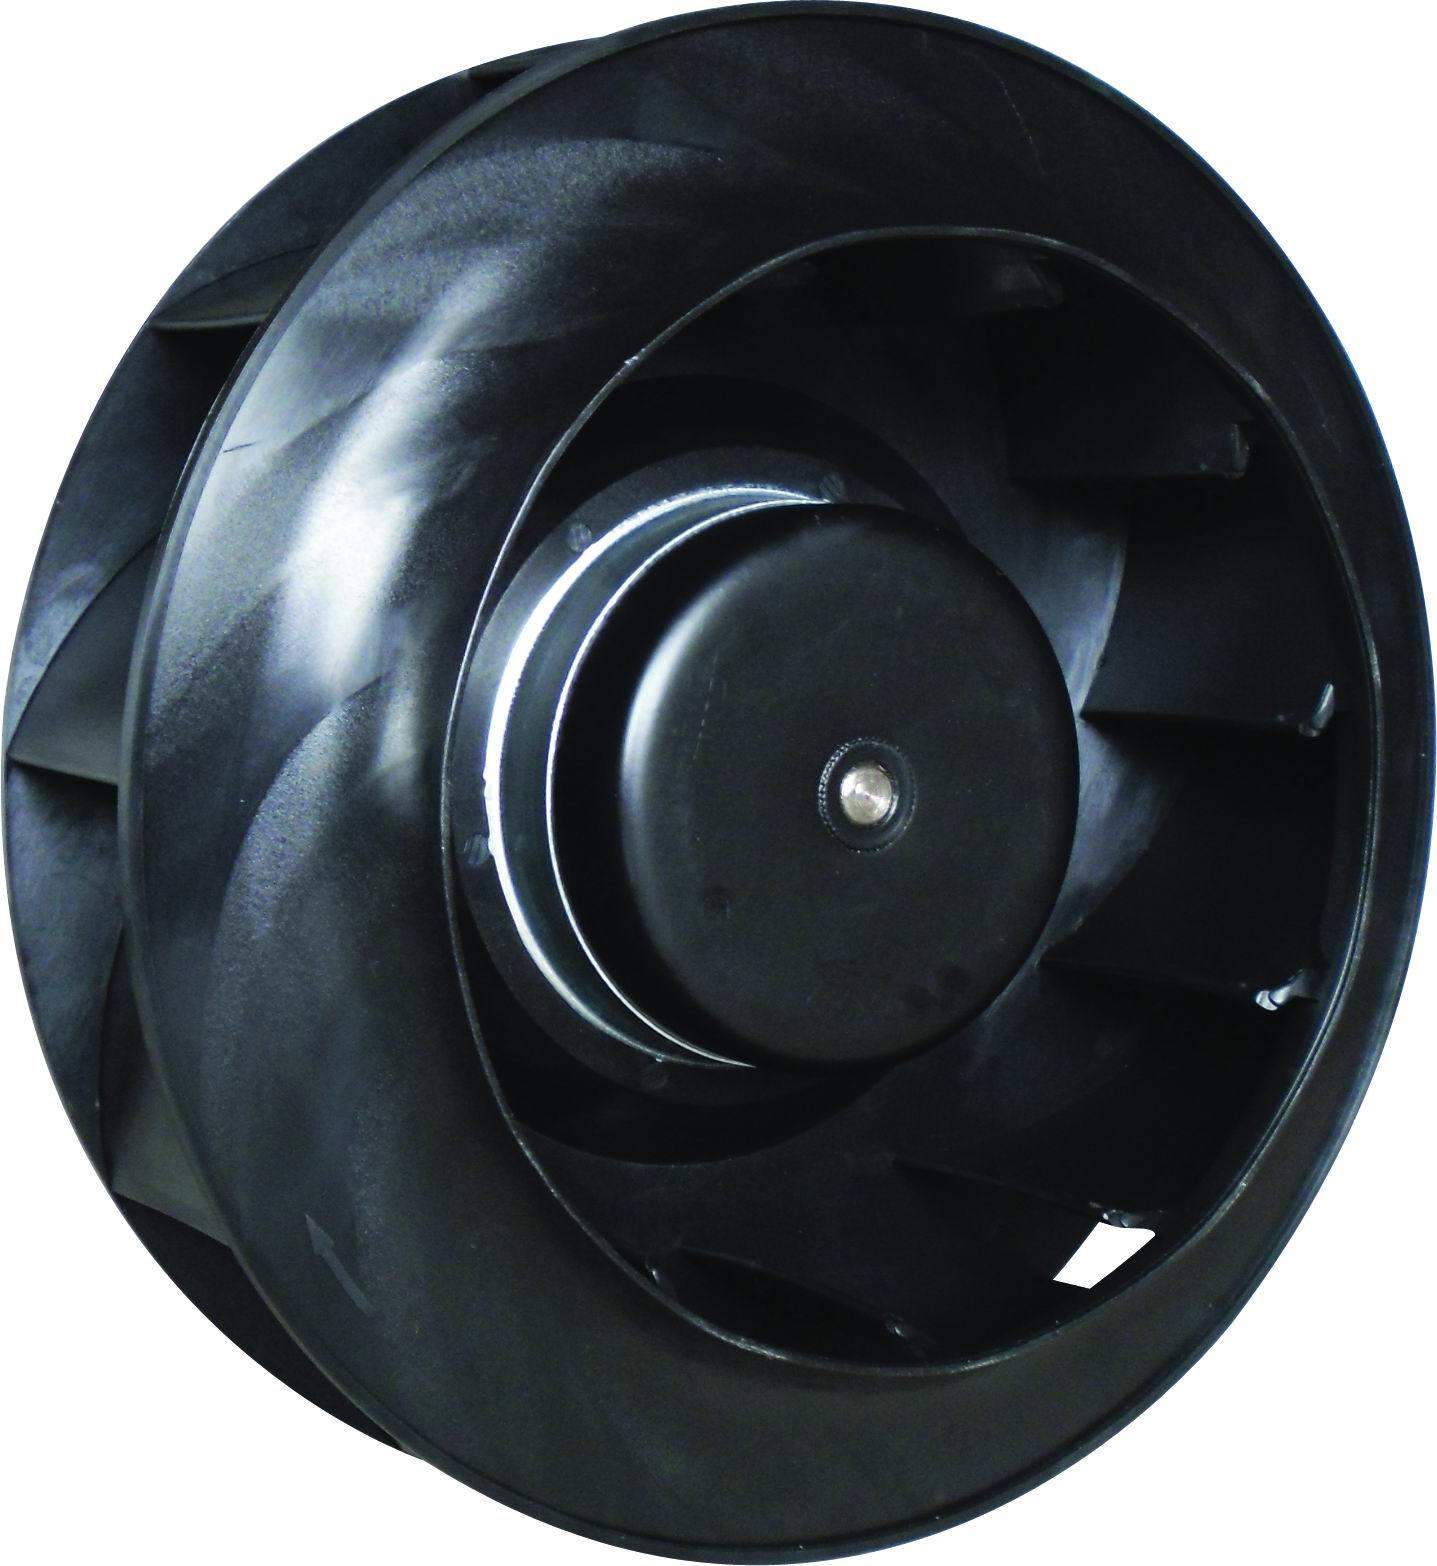 Ec Centrifugal Fan with Low Power Consumption China Centrifugal Fan  #4C657F